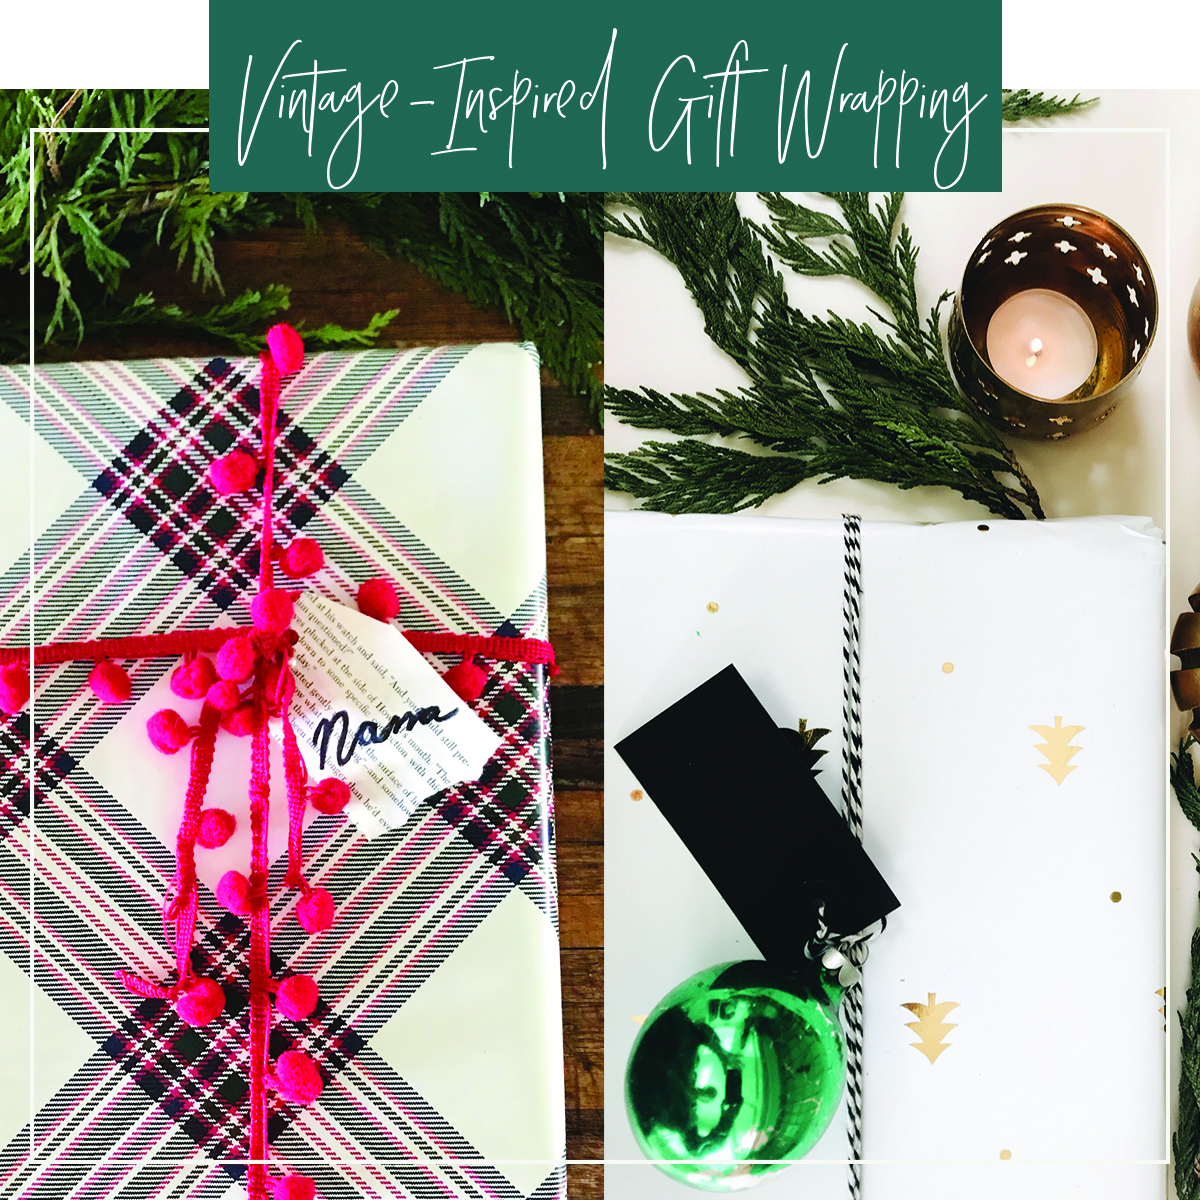 Vintage-Inspired Holiday Gift Wrapping - Junk In The Trunk Vintage Market